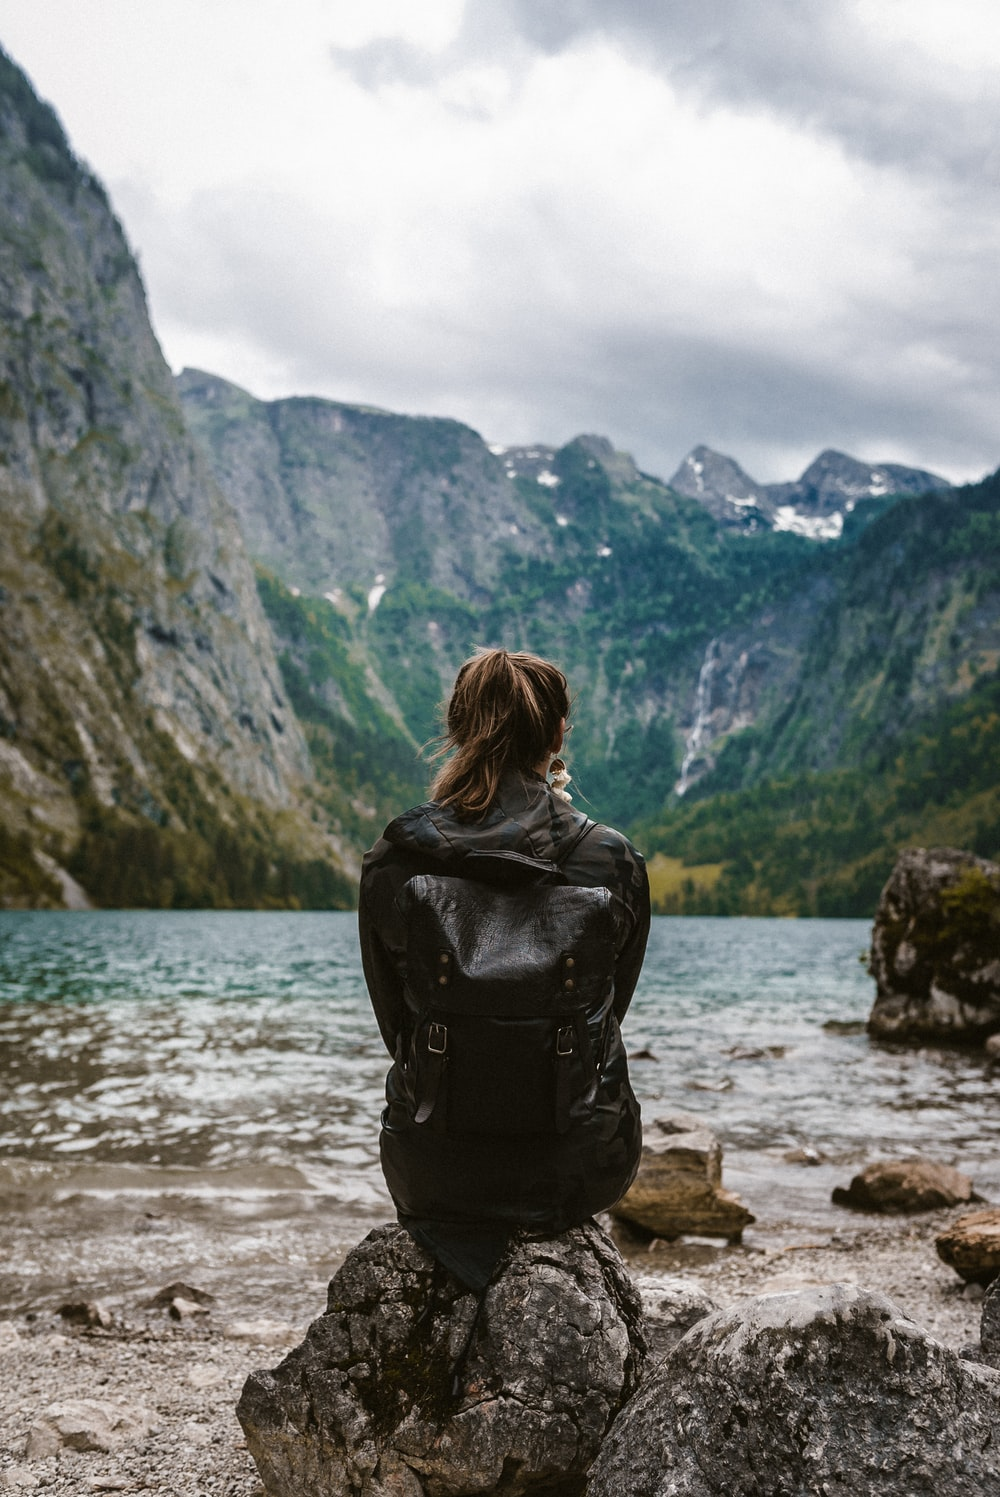 woman in black leather jacket standing on rock near body of water during daytime